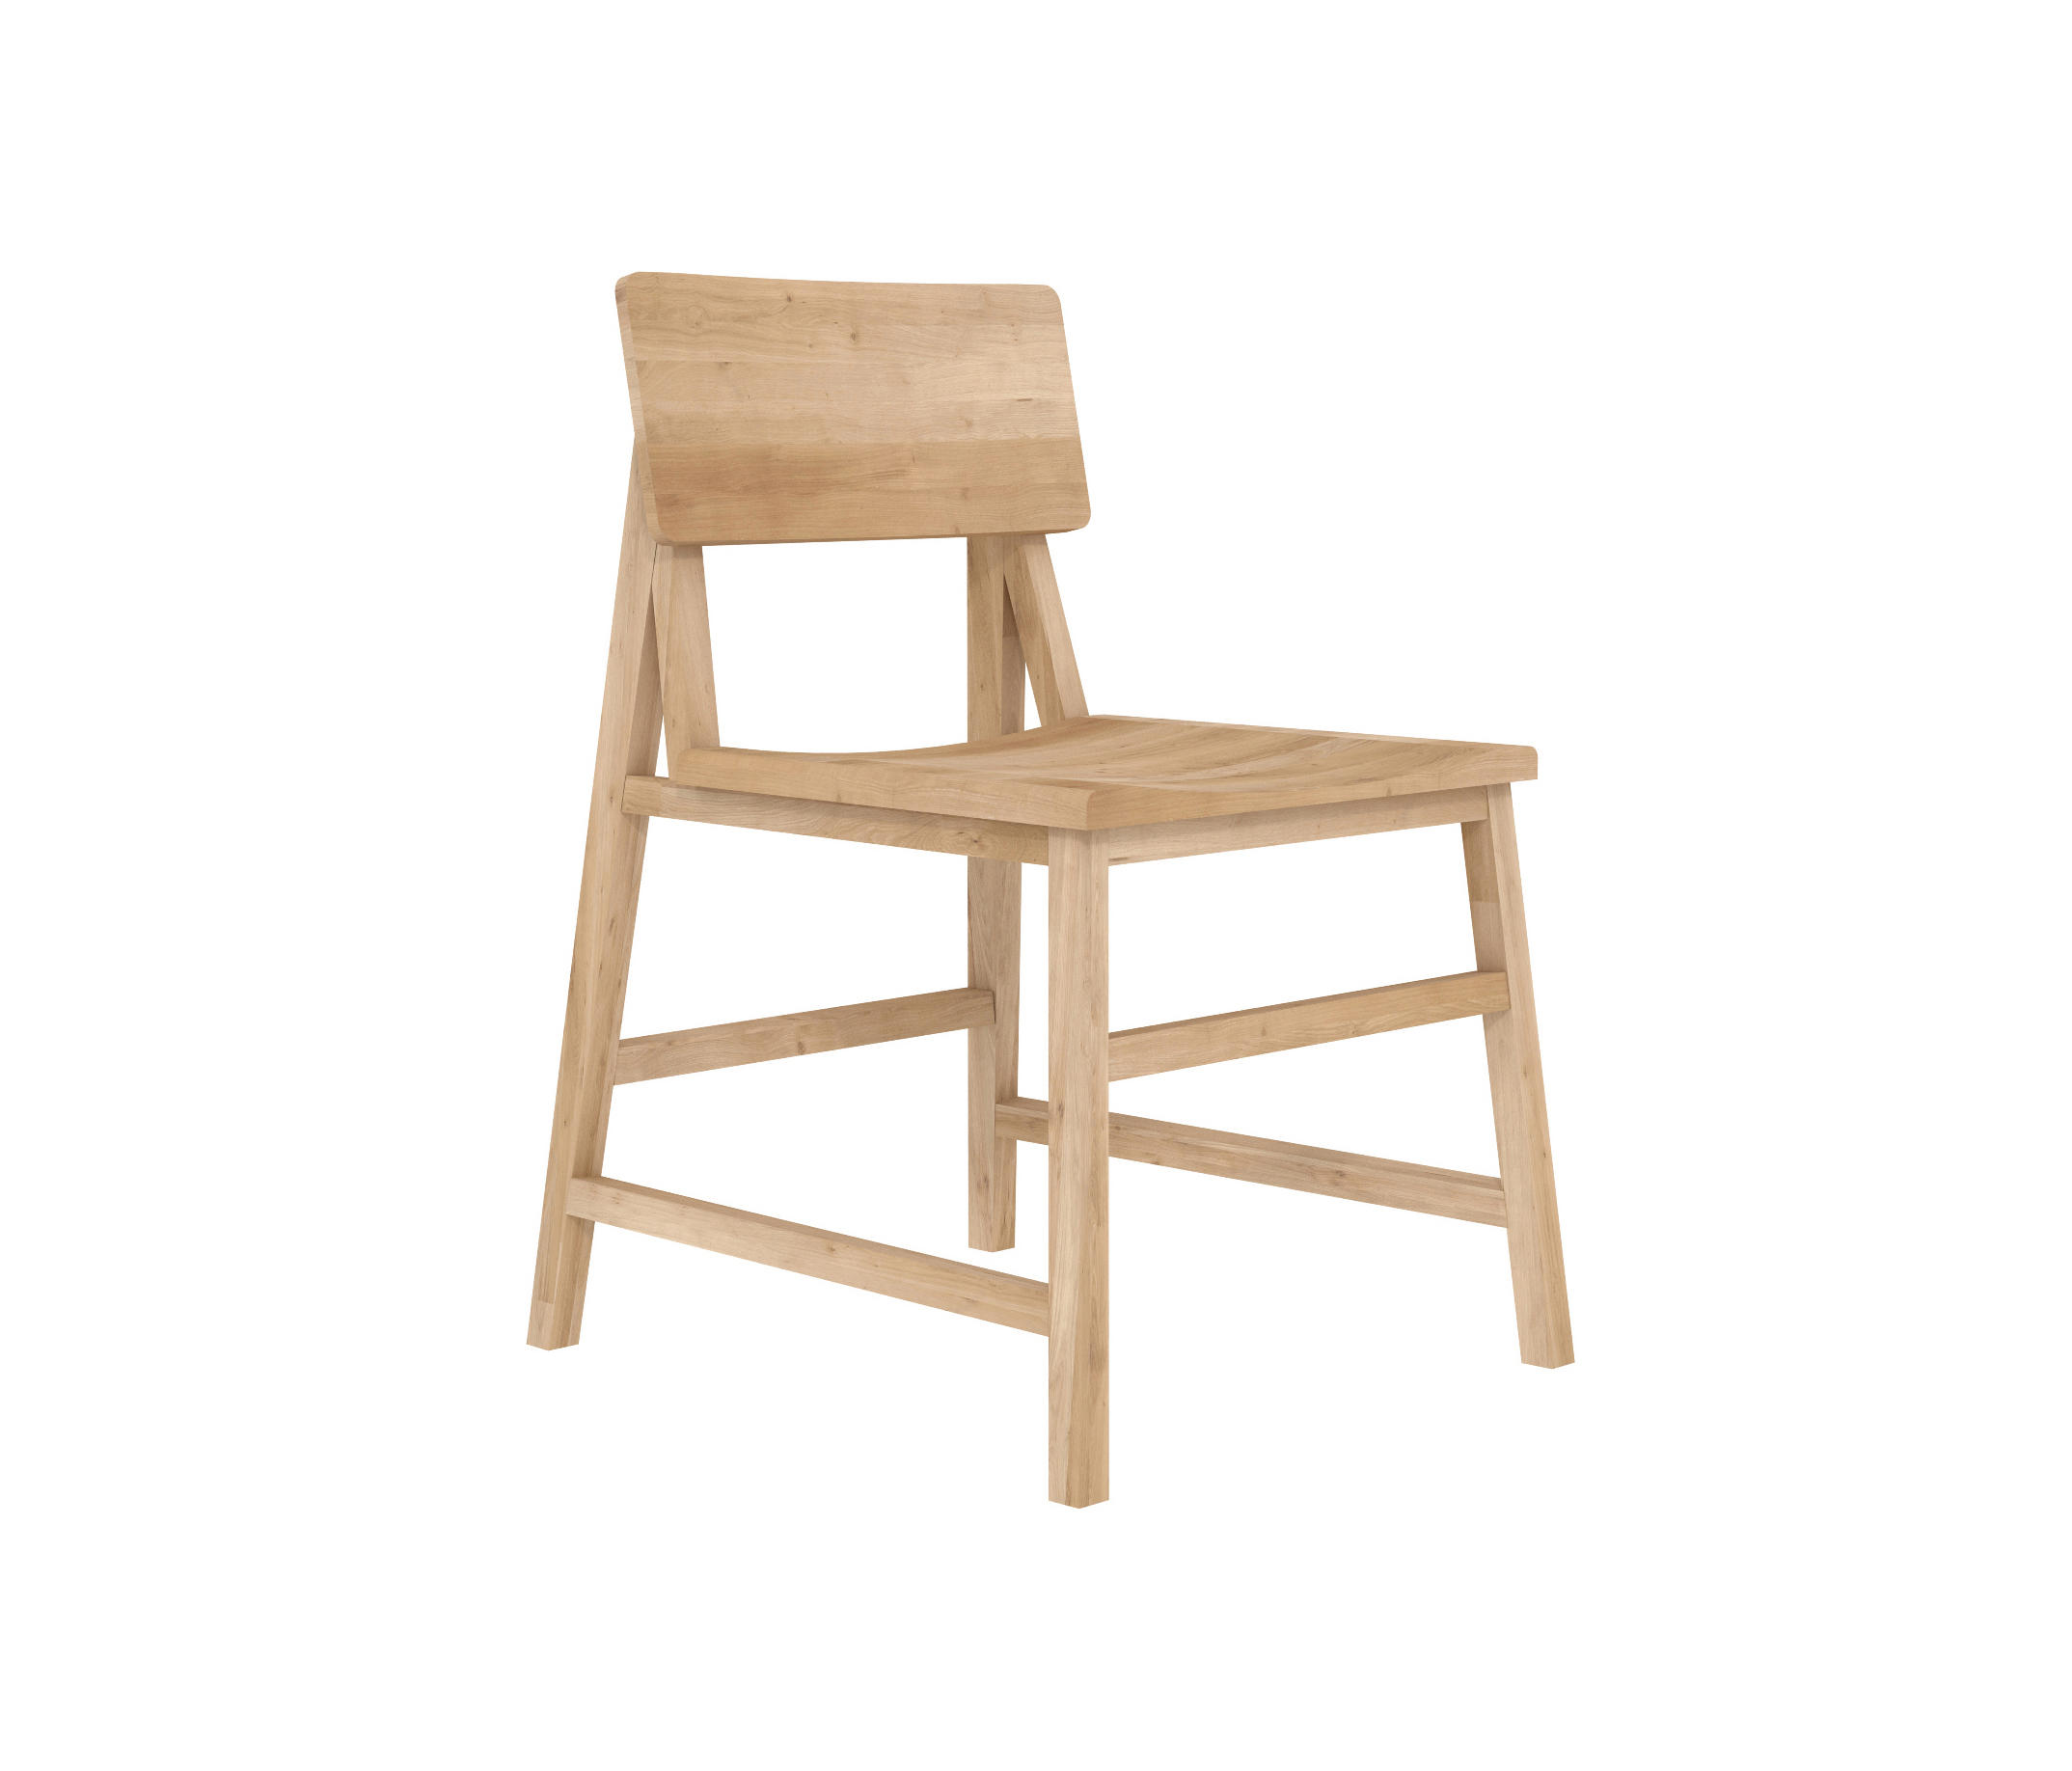 Oak n1 chair chaises de restaurant de ethnicraft architonic - Fabricant chaises belgique ...